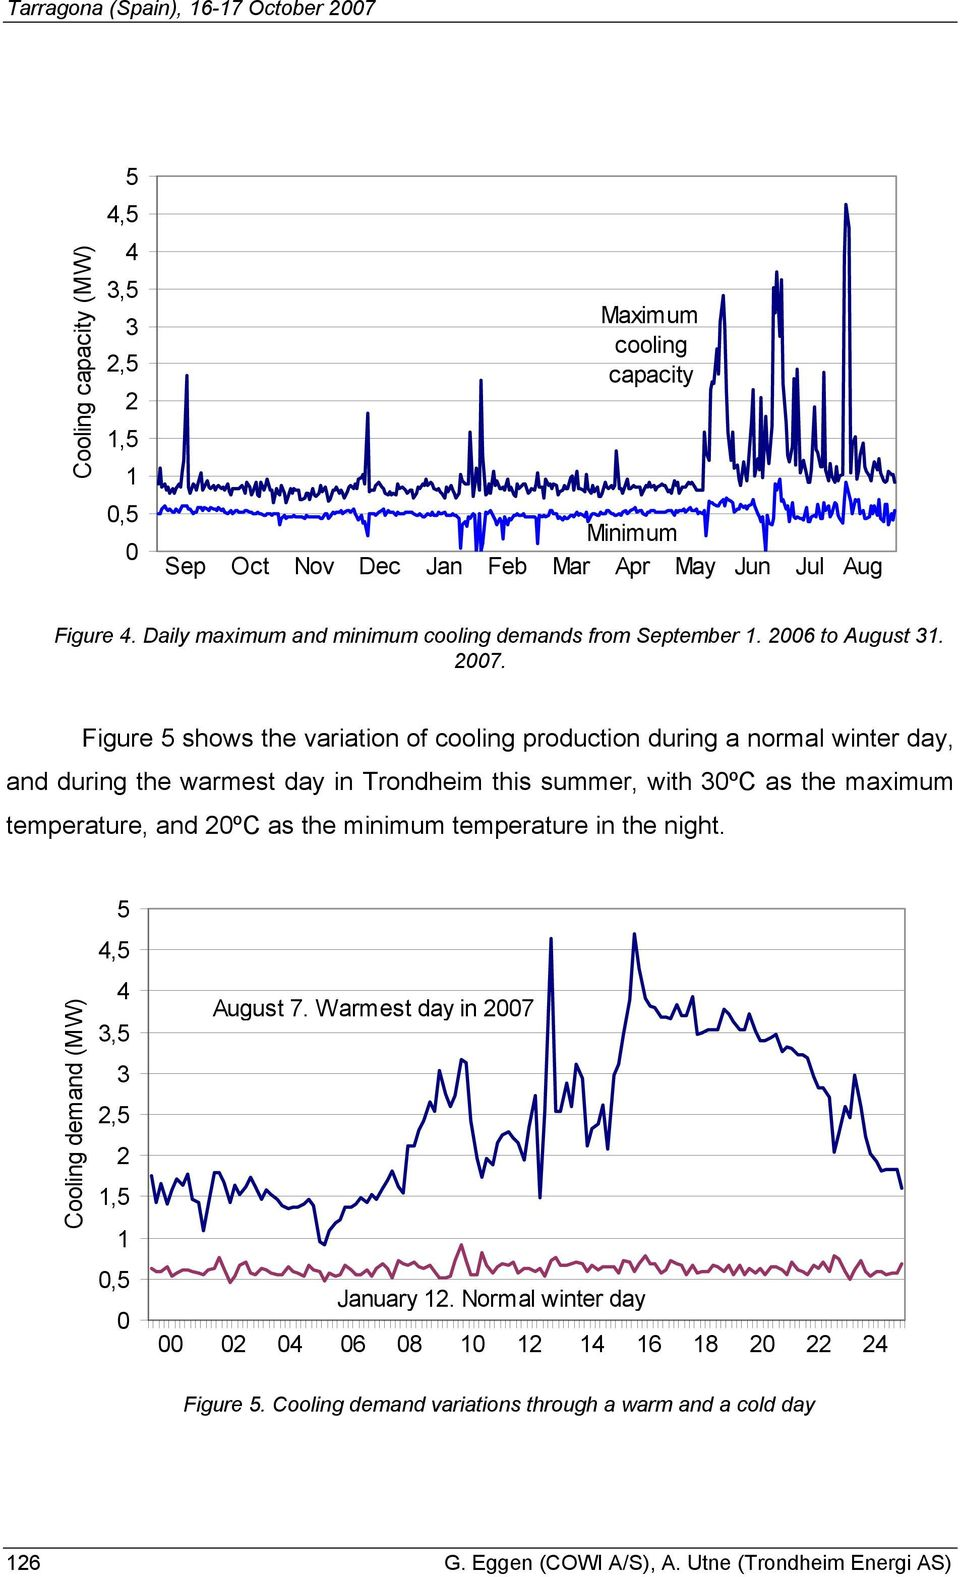 Figure 5 shows the variation of cooling production during a normal winter day, and during the warmest day in Trondheim this summer, with 30ºC as the maximum temperature, and 20ºC as the